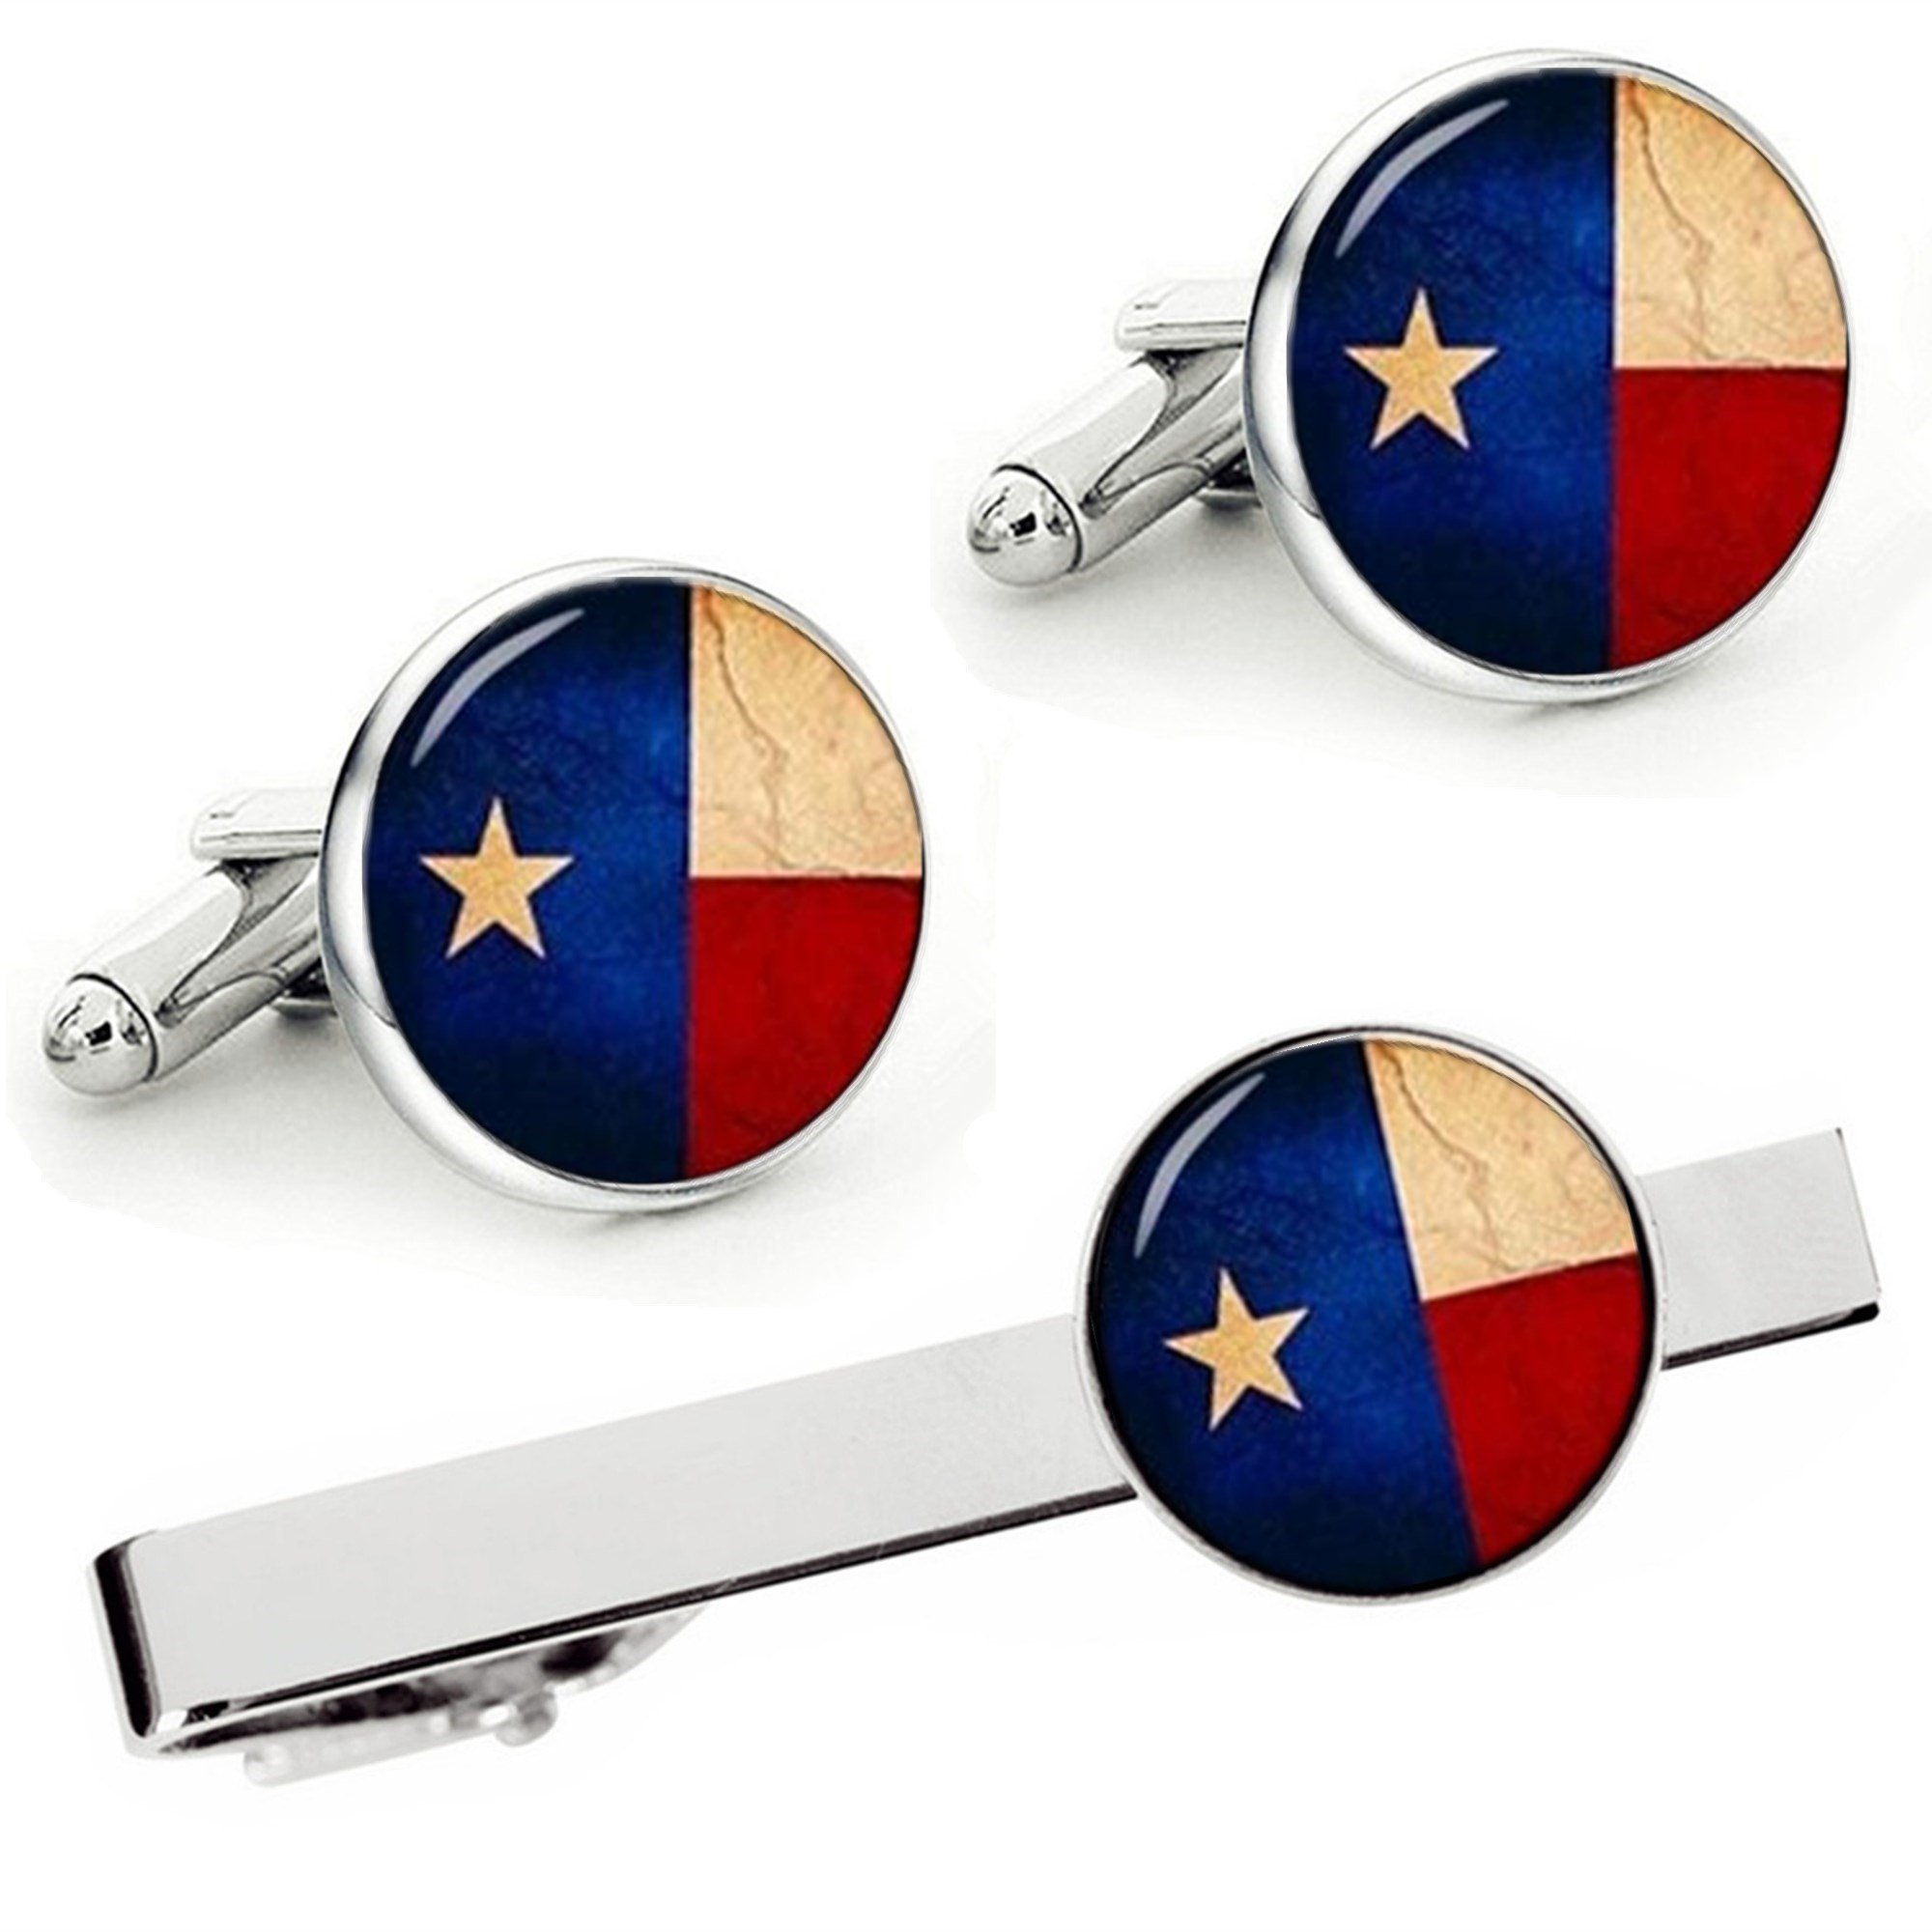 Kooer Vintage Flag of Texas Cufflinks Texas State Flag Custom Personalized Flag Cuff Links Wedding Gift (cufflinks & tie clip set)